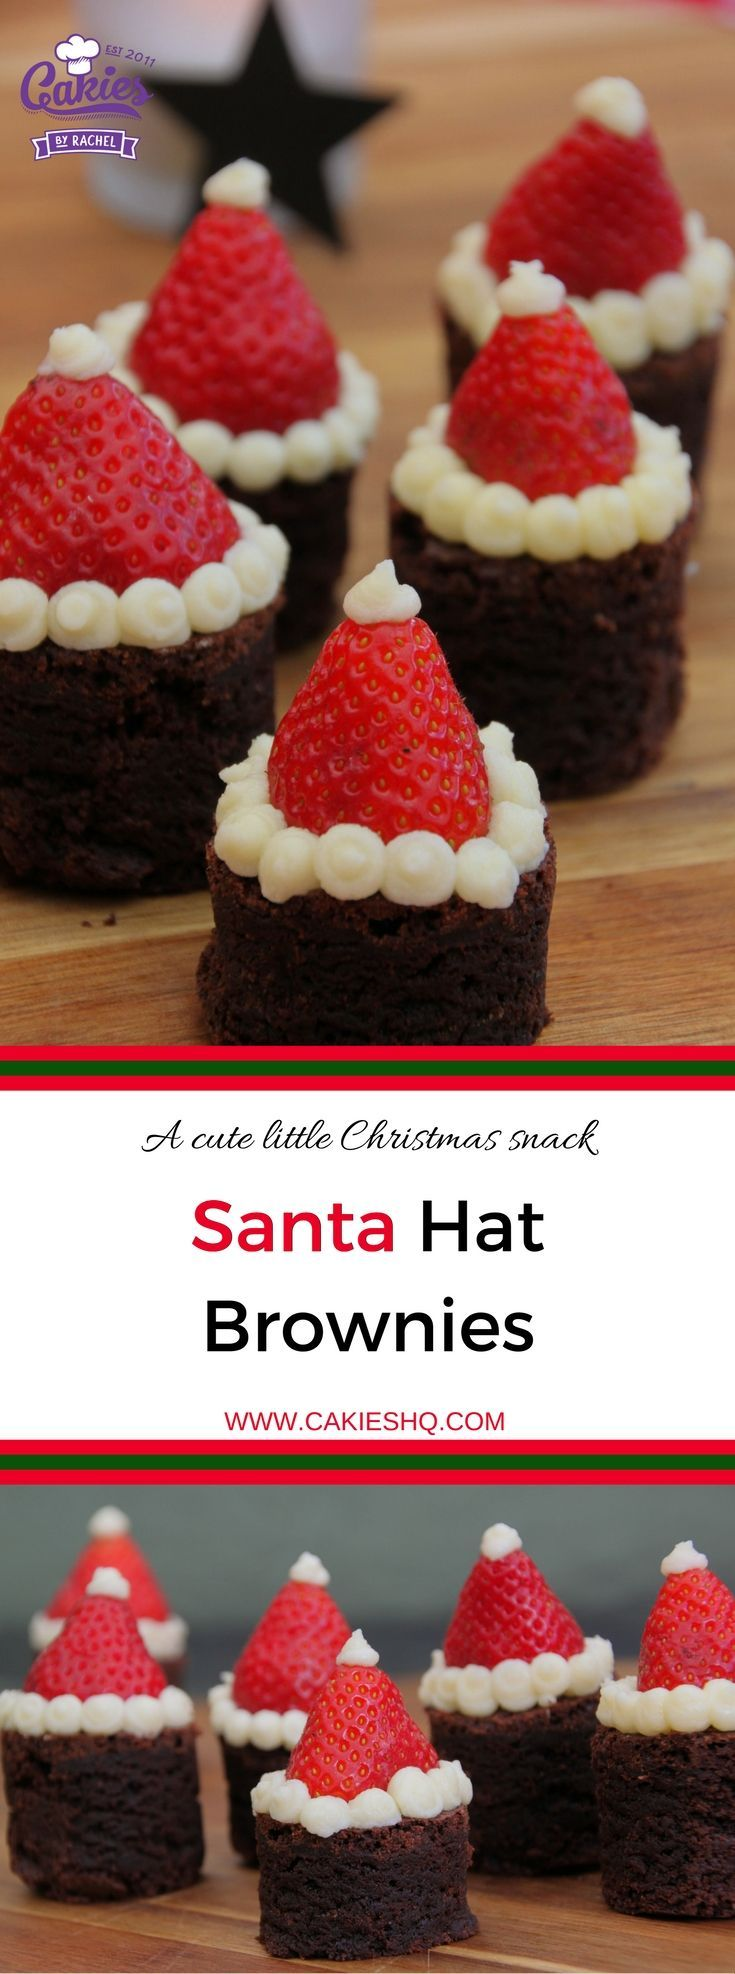 These Santa Hat Brownies are super cute and easy to make, perfect for Christmas. Rich brownies topped with strawberries everyone will love.